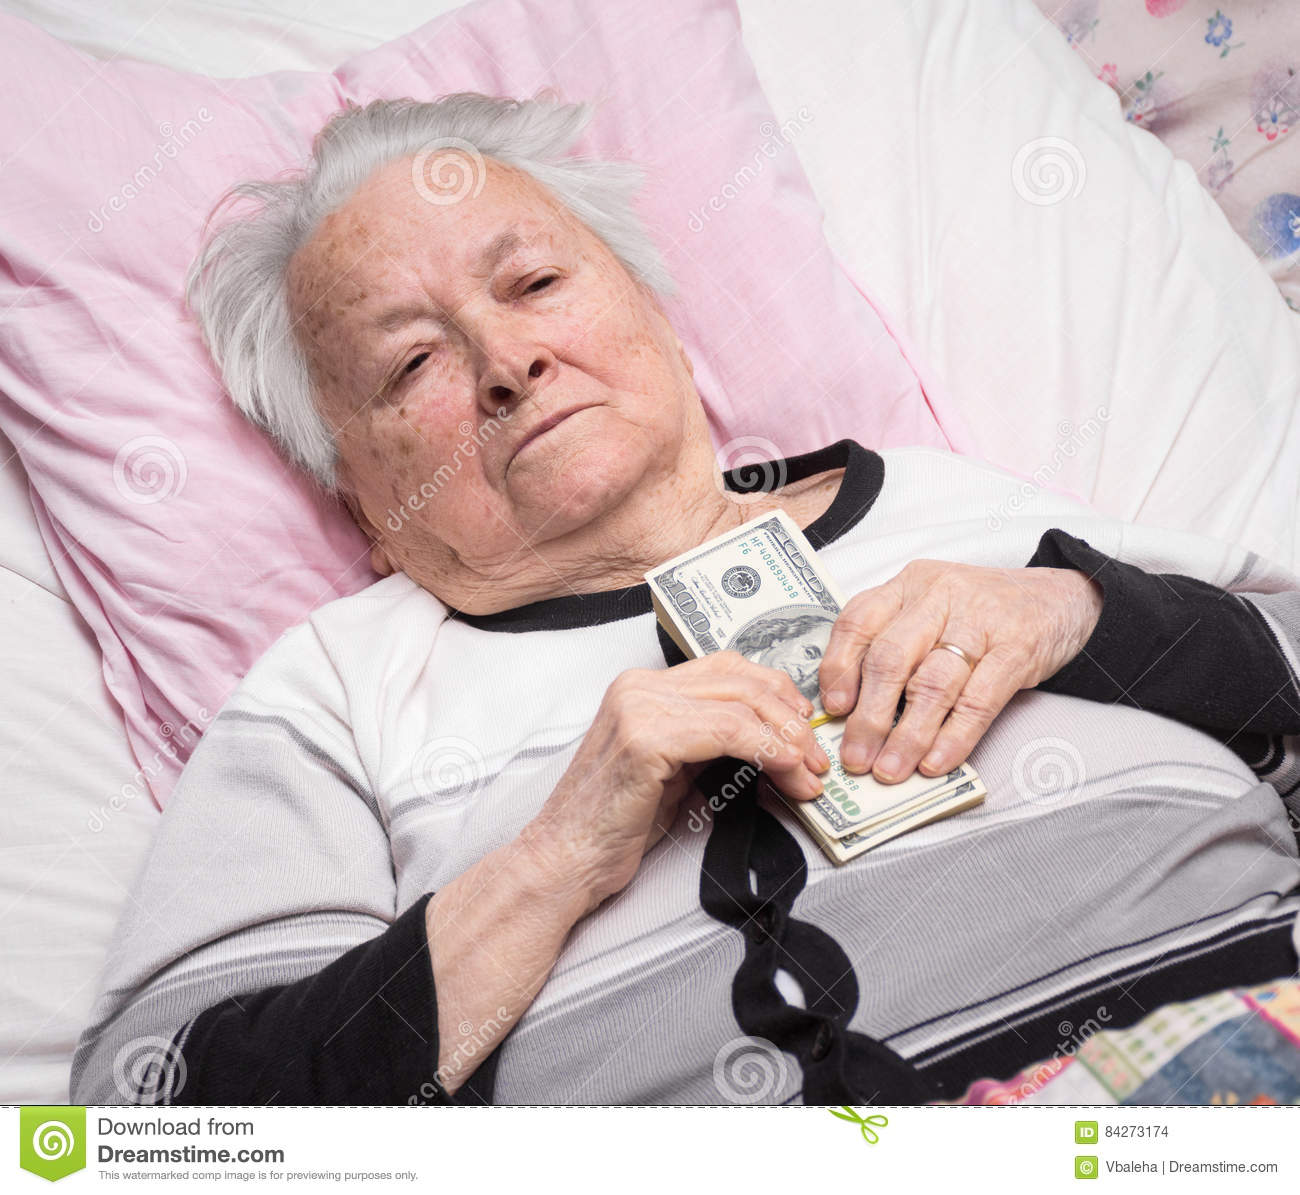 How To Be More Confident In Bed Old Woman Lying In Bed And Holding Dollar Cash Stock Photo